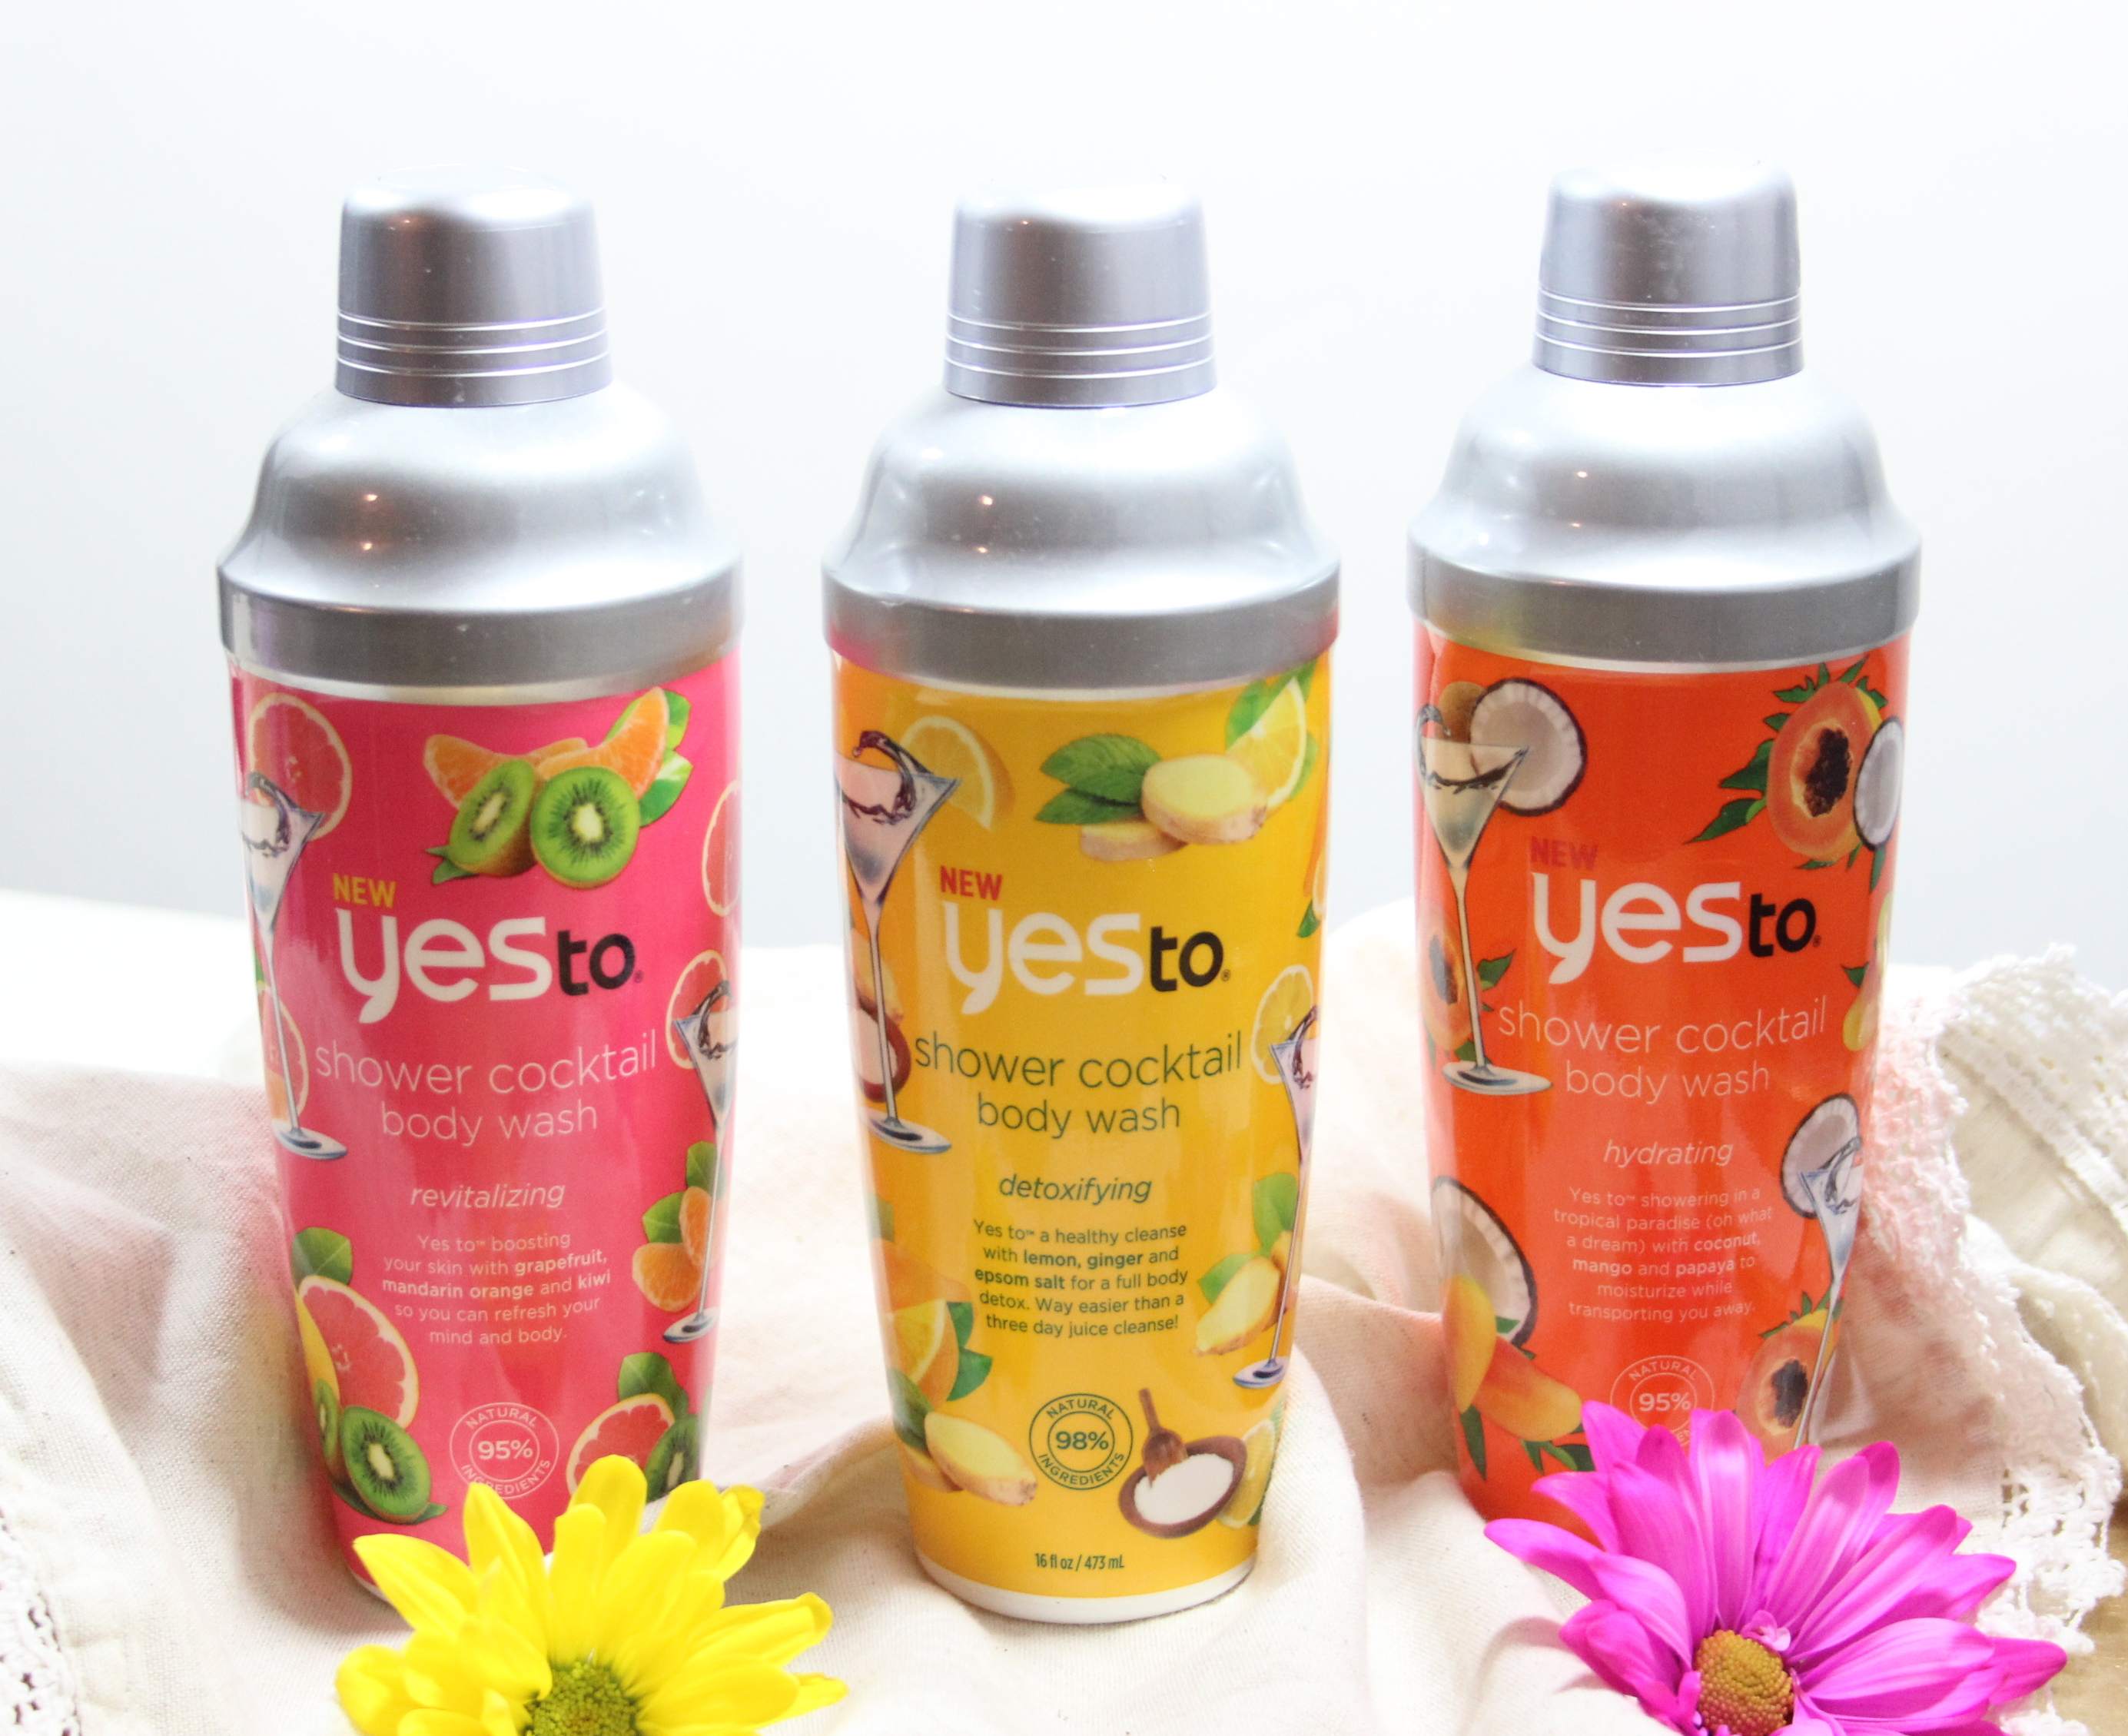 Yes To Shower Cocktail Body Wash Collection